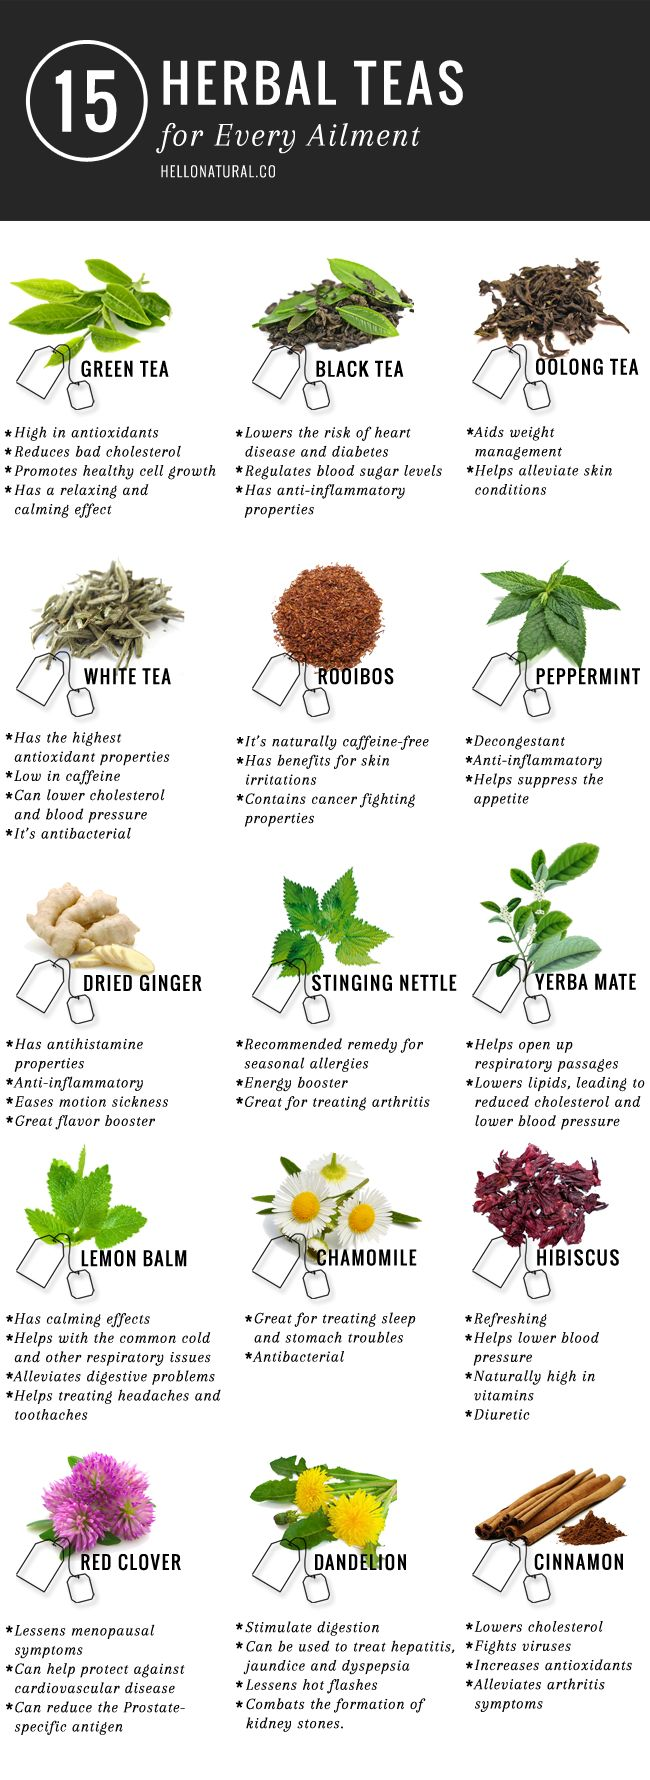 The Health Benefits of Tea + 15 Teas for Any Ailment Read more at http://hellonatural.co/the-health-benefits-of-tea-15-teas-for-any-ailment/#BRCoGcpbBt1bBcIj.99